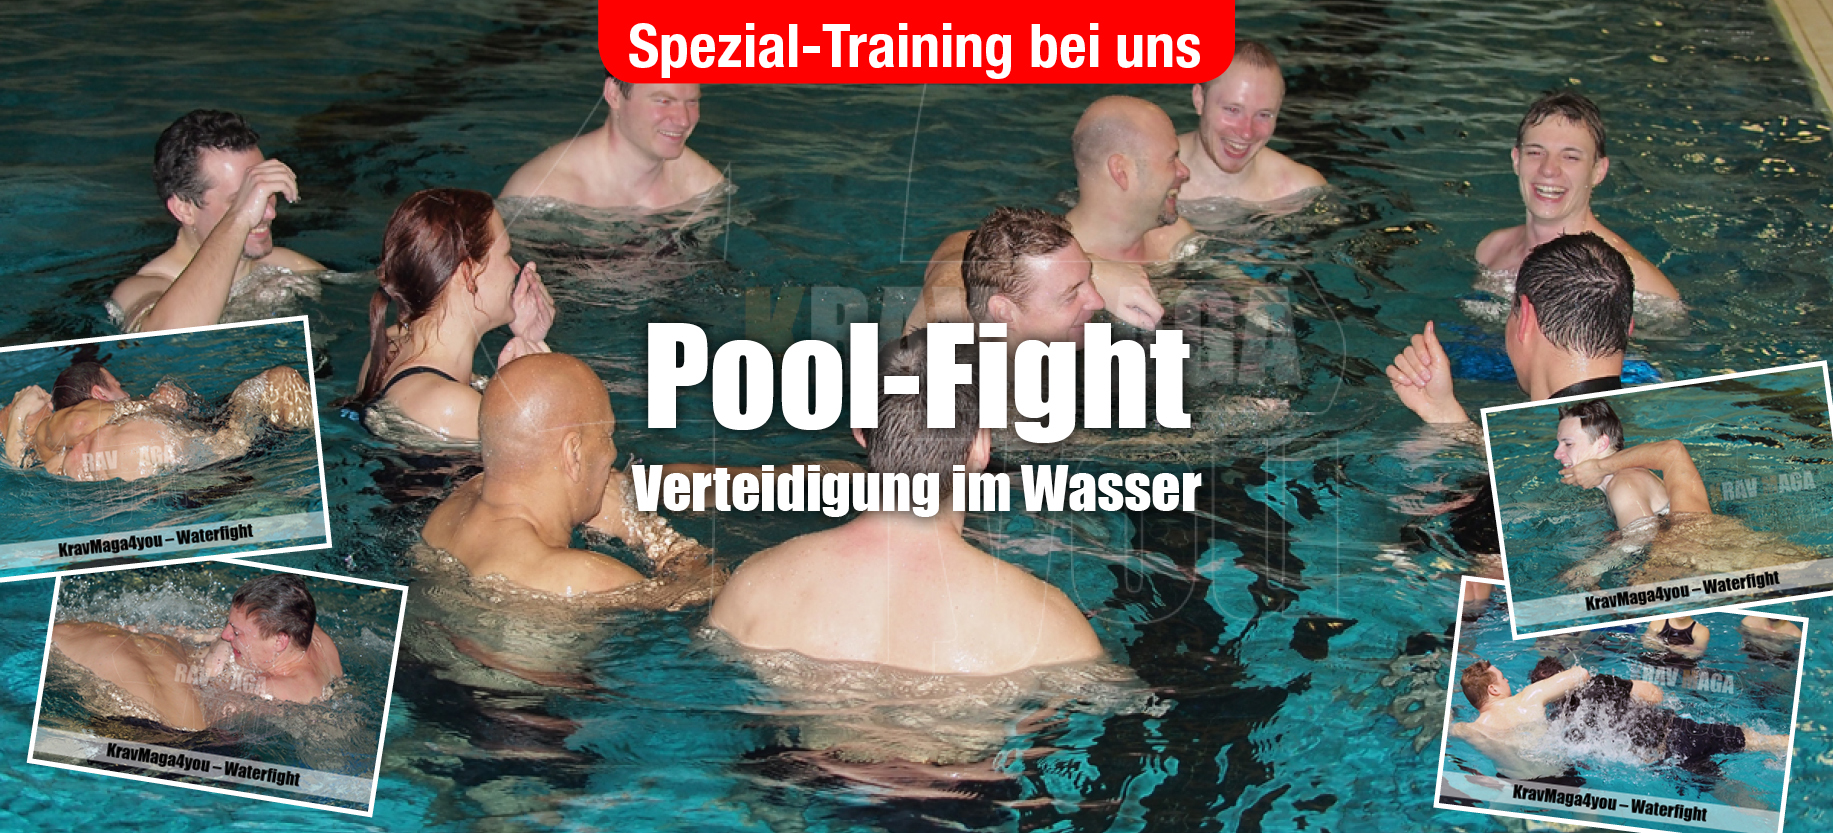 spezial-training_PoolFight